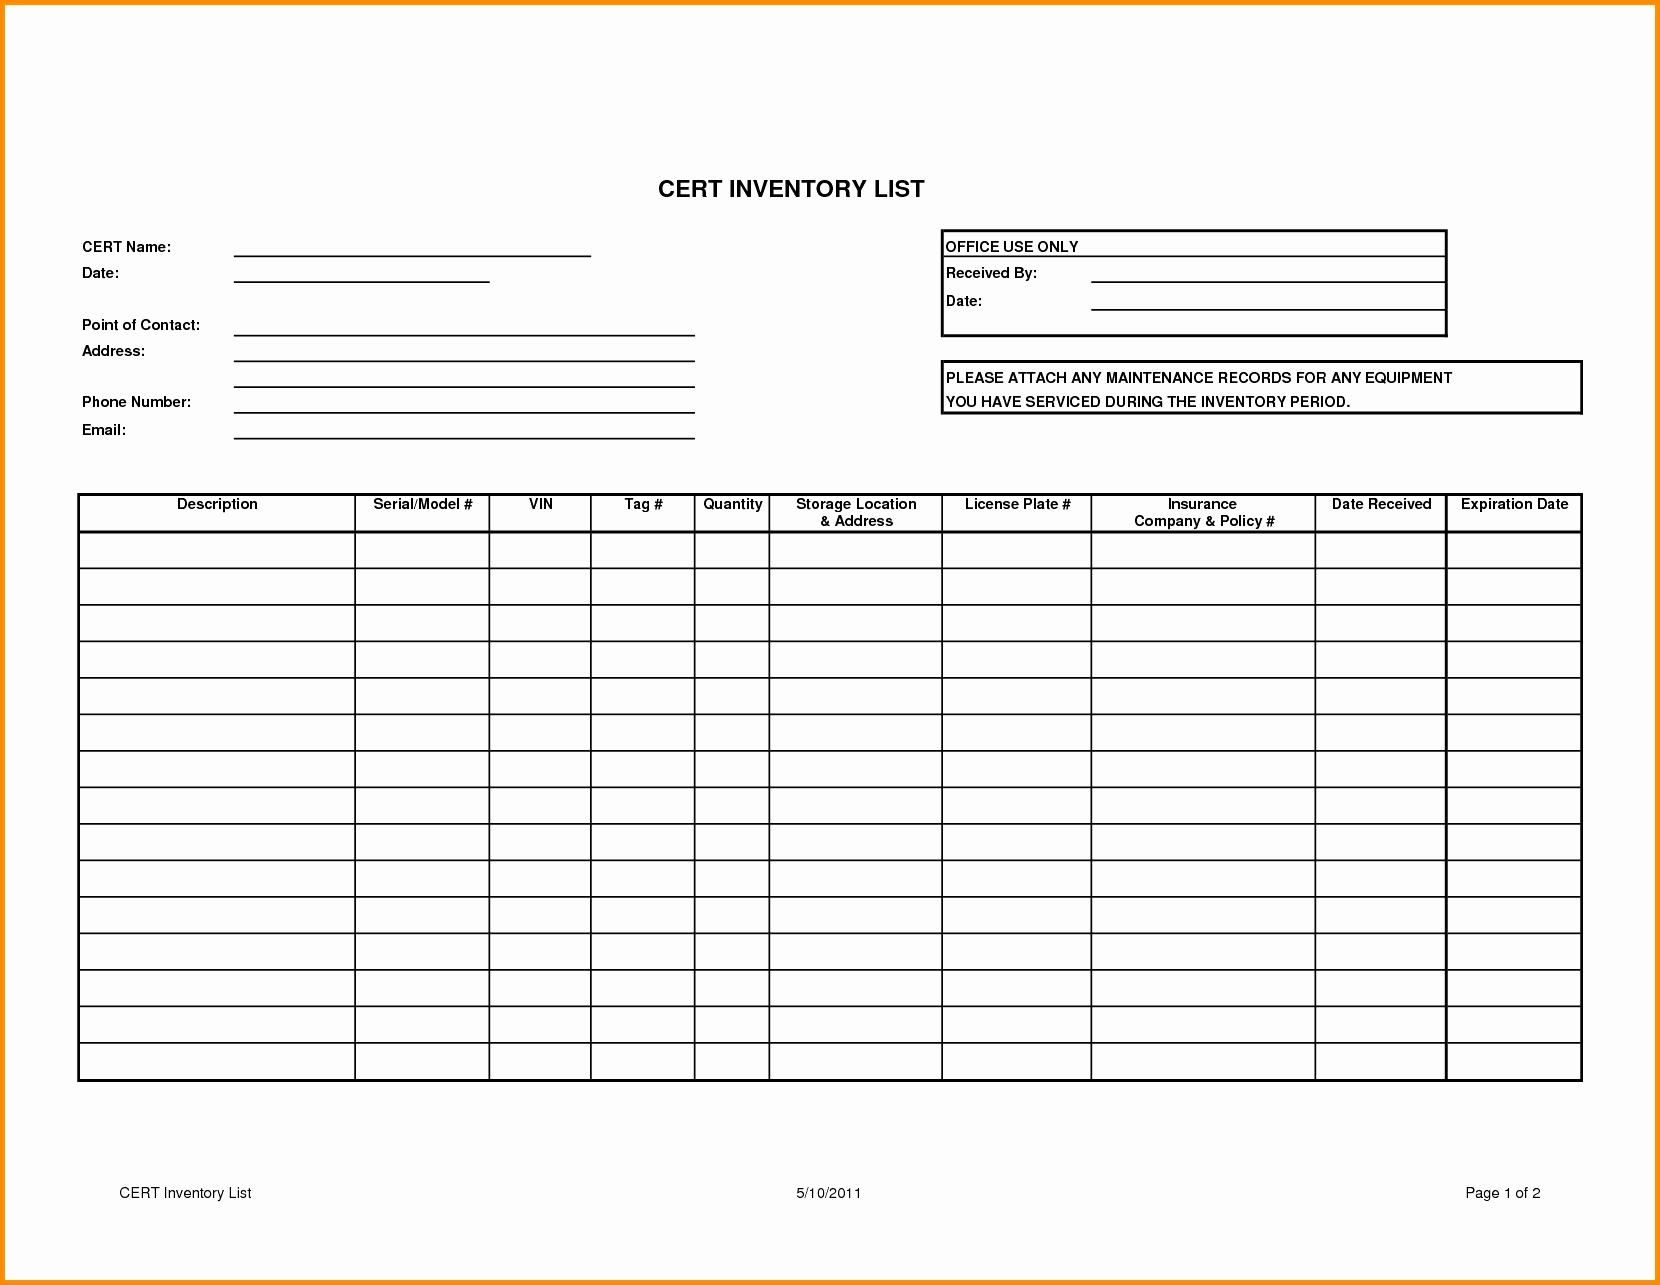 Cattle Inventory Spreadsheet As How To Make A Spreadsheet Dave With Cattle Inventory Spreadsheet